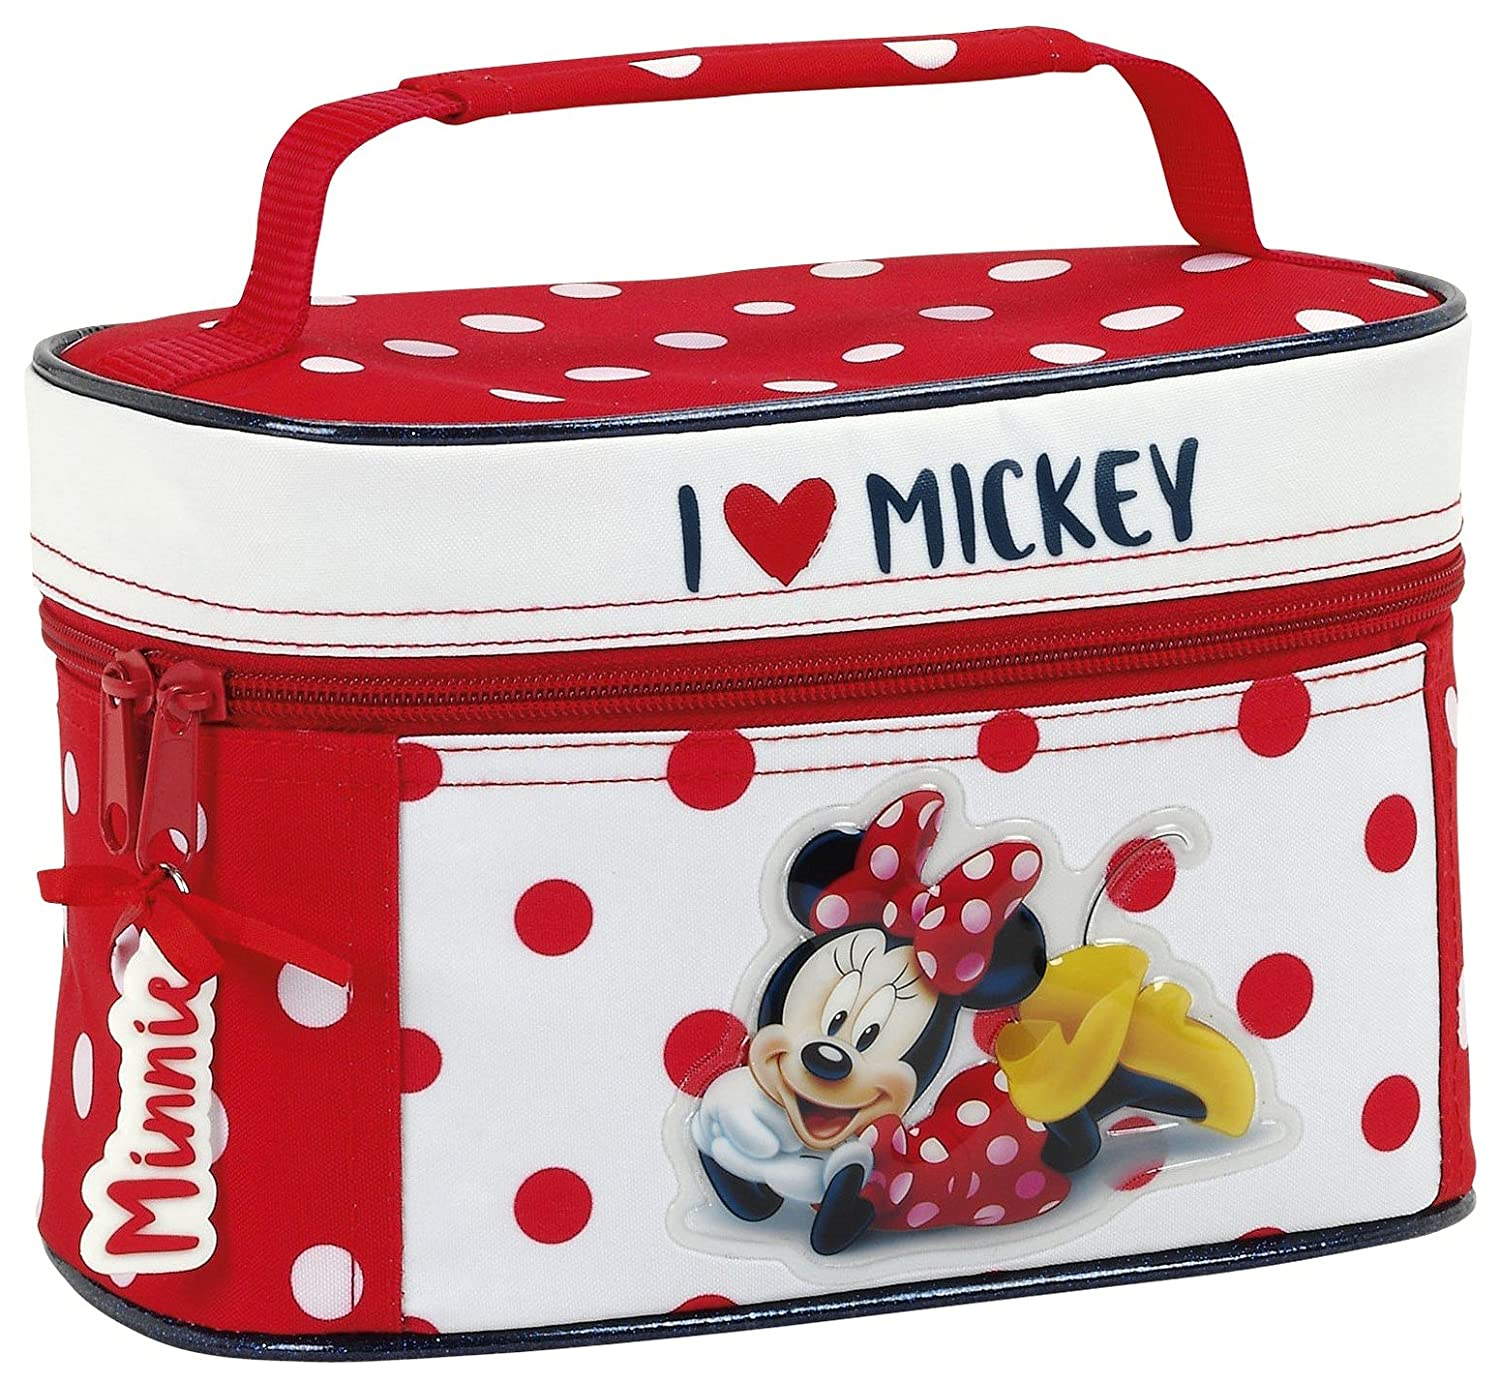 Minnie 811748042 Mouse Neceser, 22 cm, Rojo y Blanco: Amazon ...